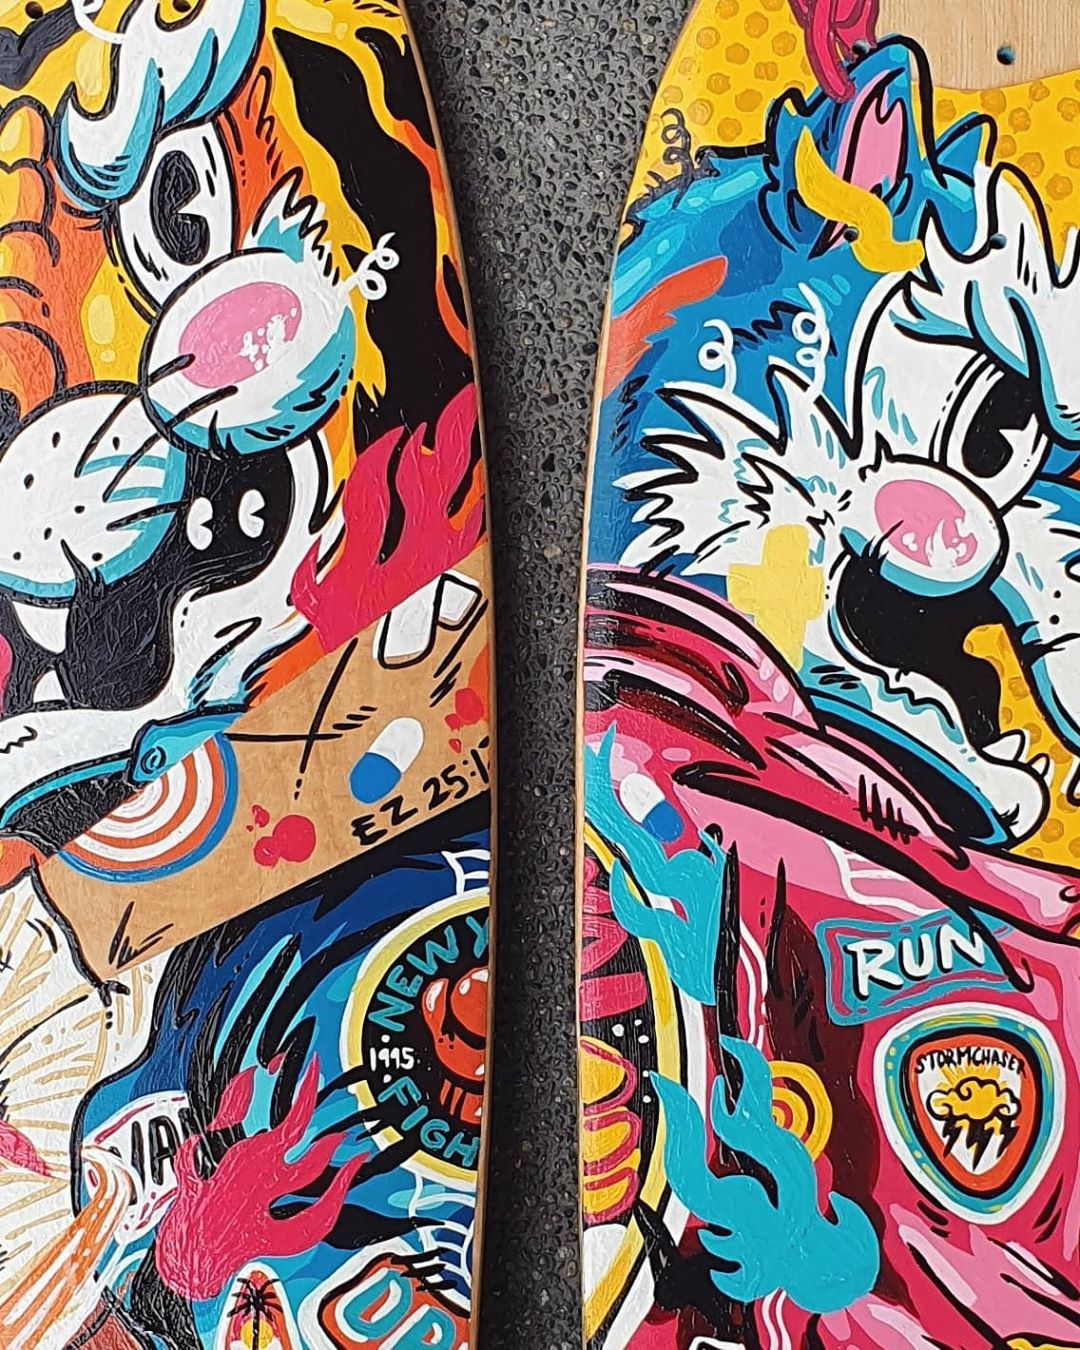 Custom Skateboards By Jappy Agoncillo 8.jpg